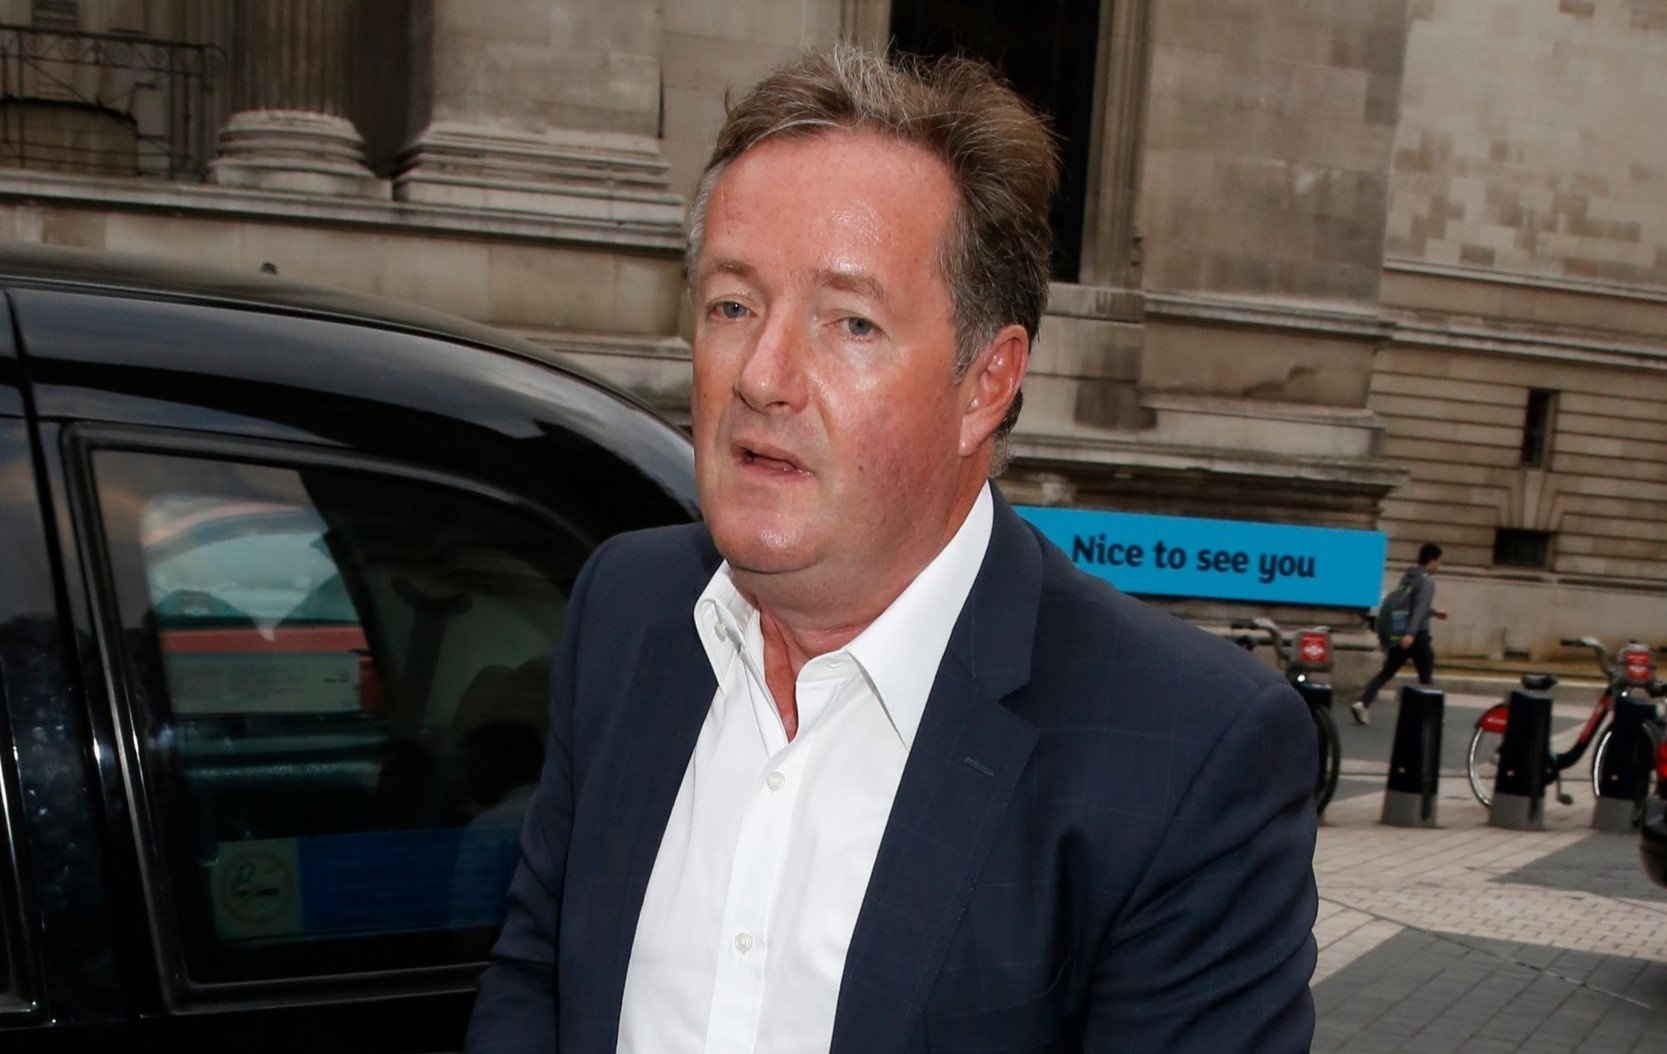 Piers Morgan defends his parenting skills during Twitter debate